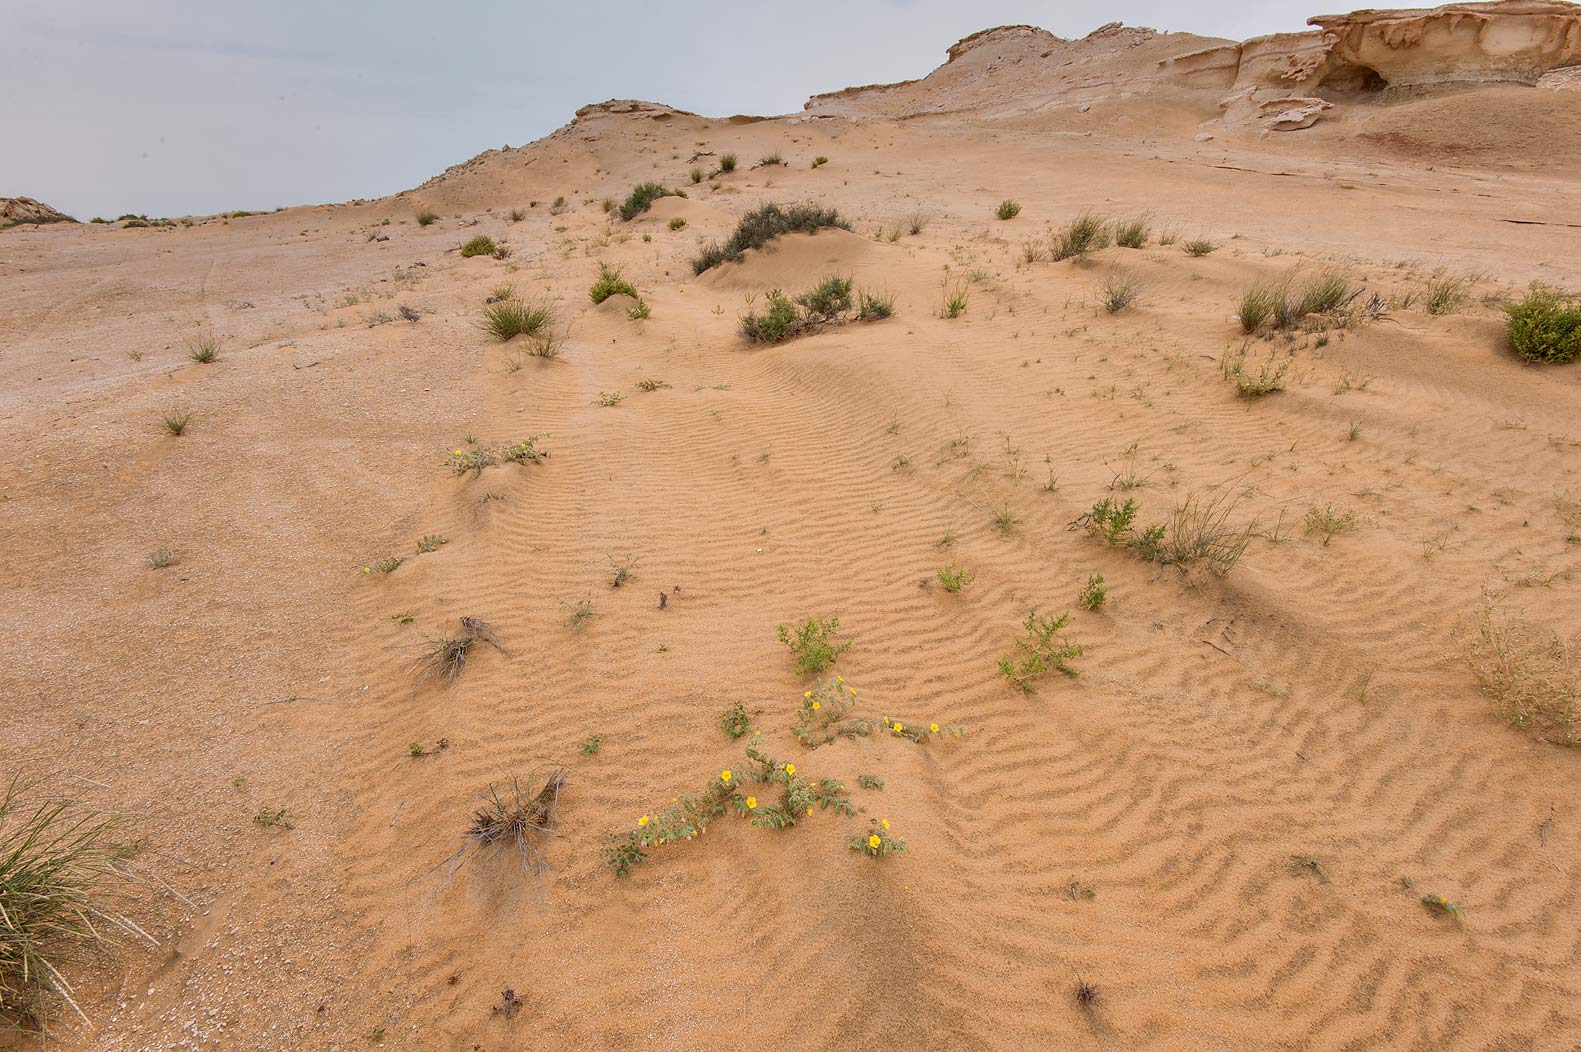 Habitat of the plant Agriophyllum minus on...Reserve near Abu Samra. Southern Qatar